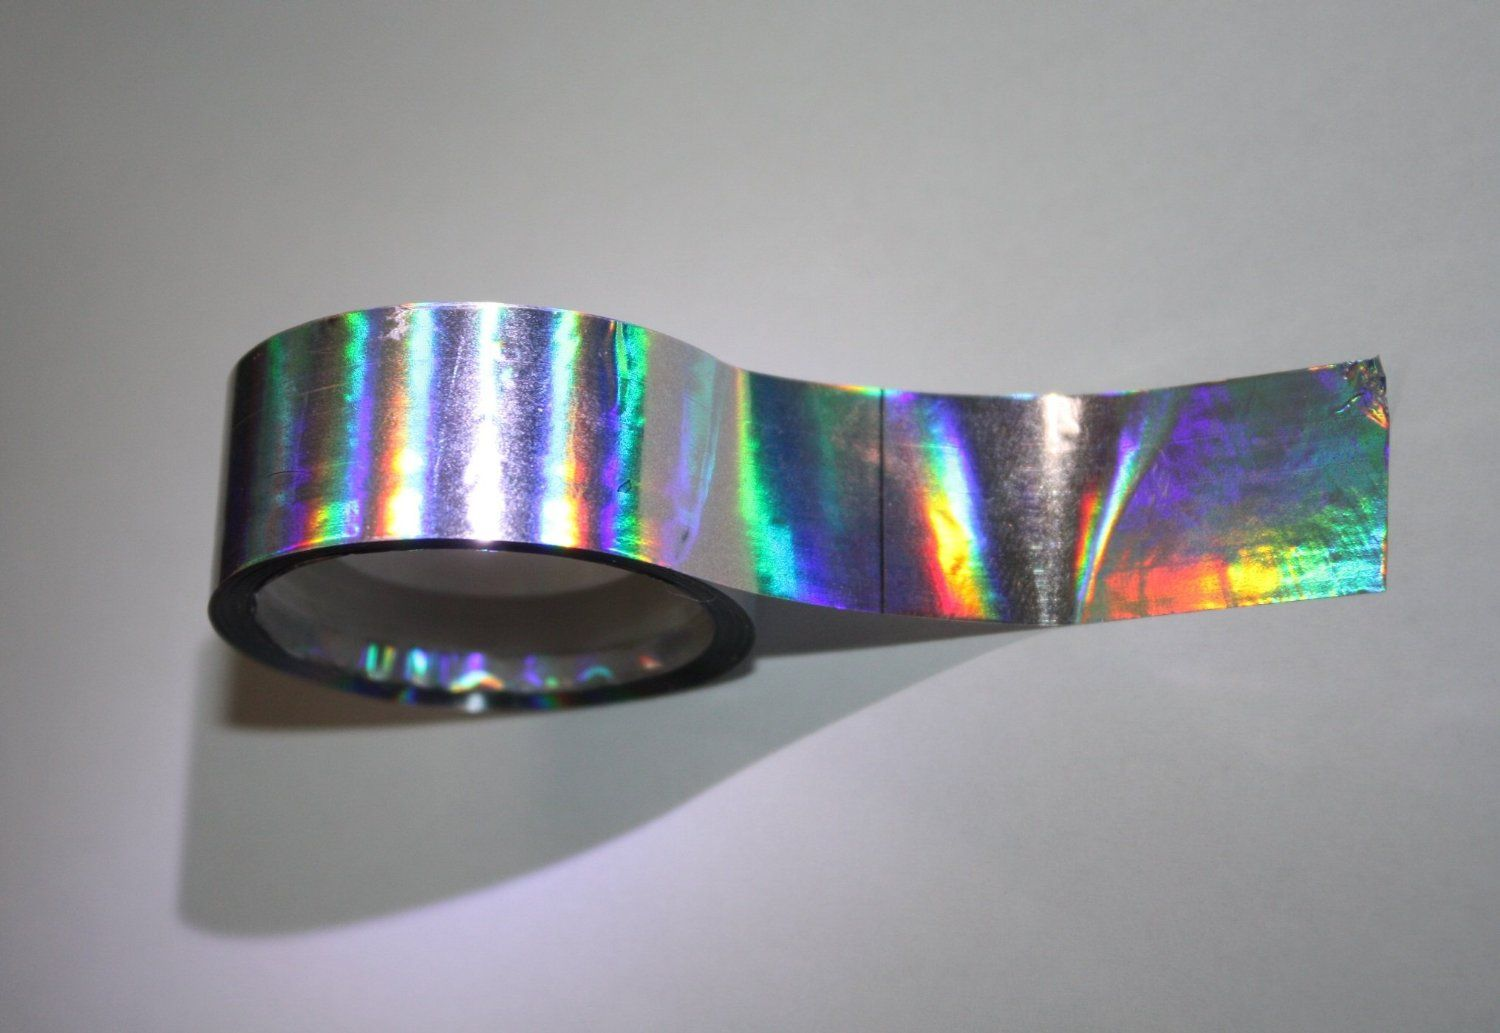 Amazon.com : Holographic/Rainbow Tape : Arts And Crafts Tapes : Office Products